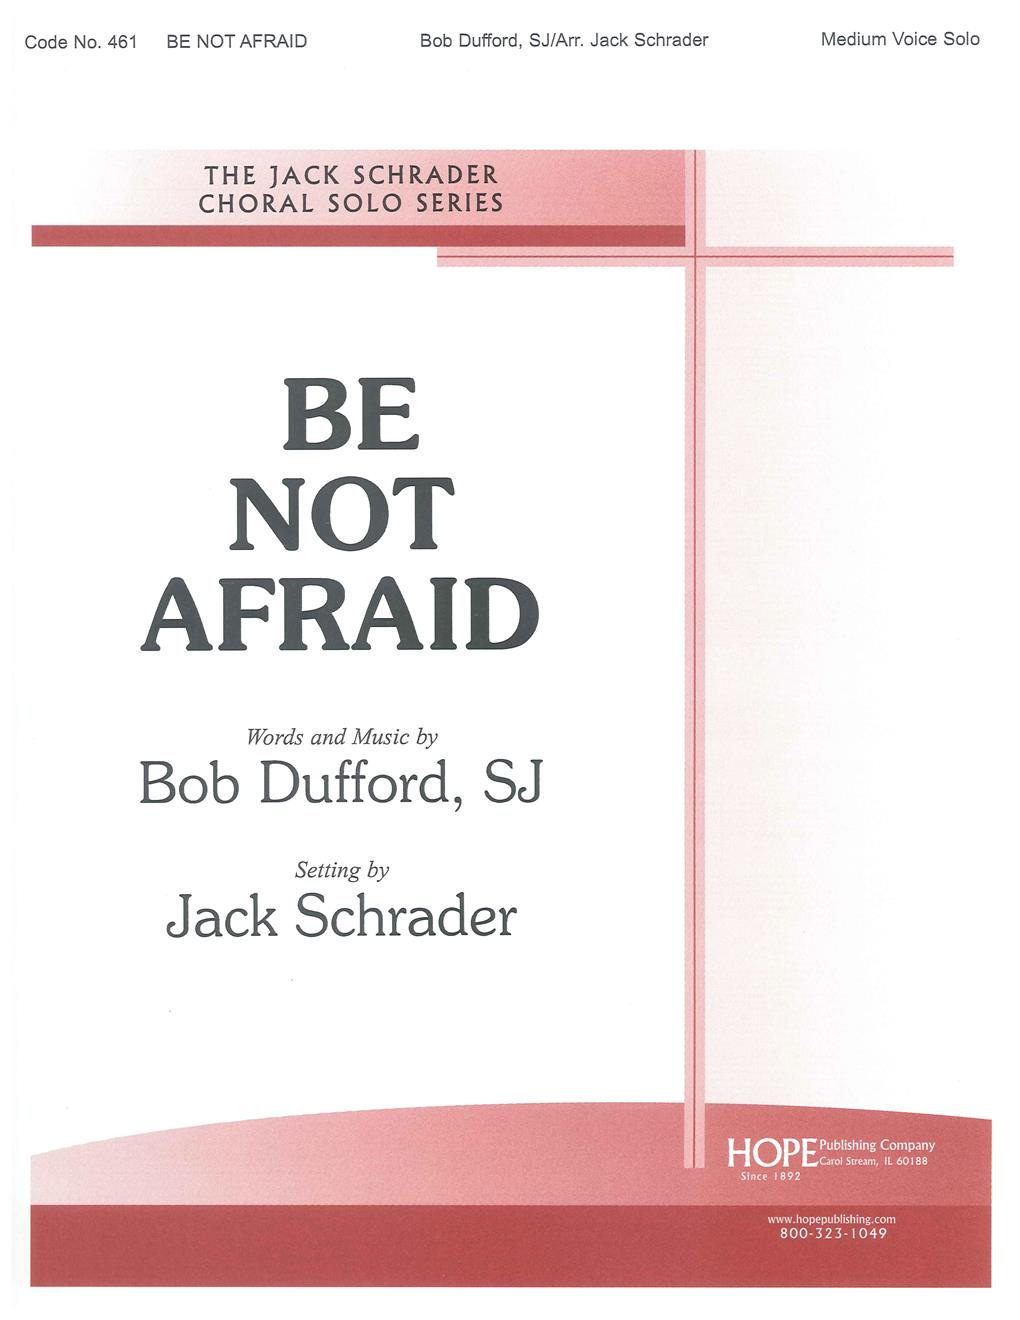 Be Not Afraid - Solo - Medium Voice - Key of G Cover Image